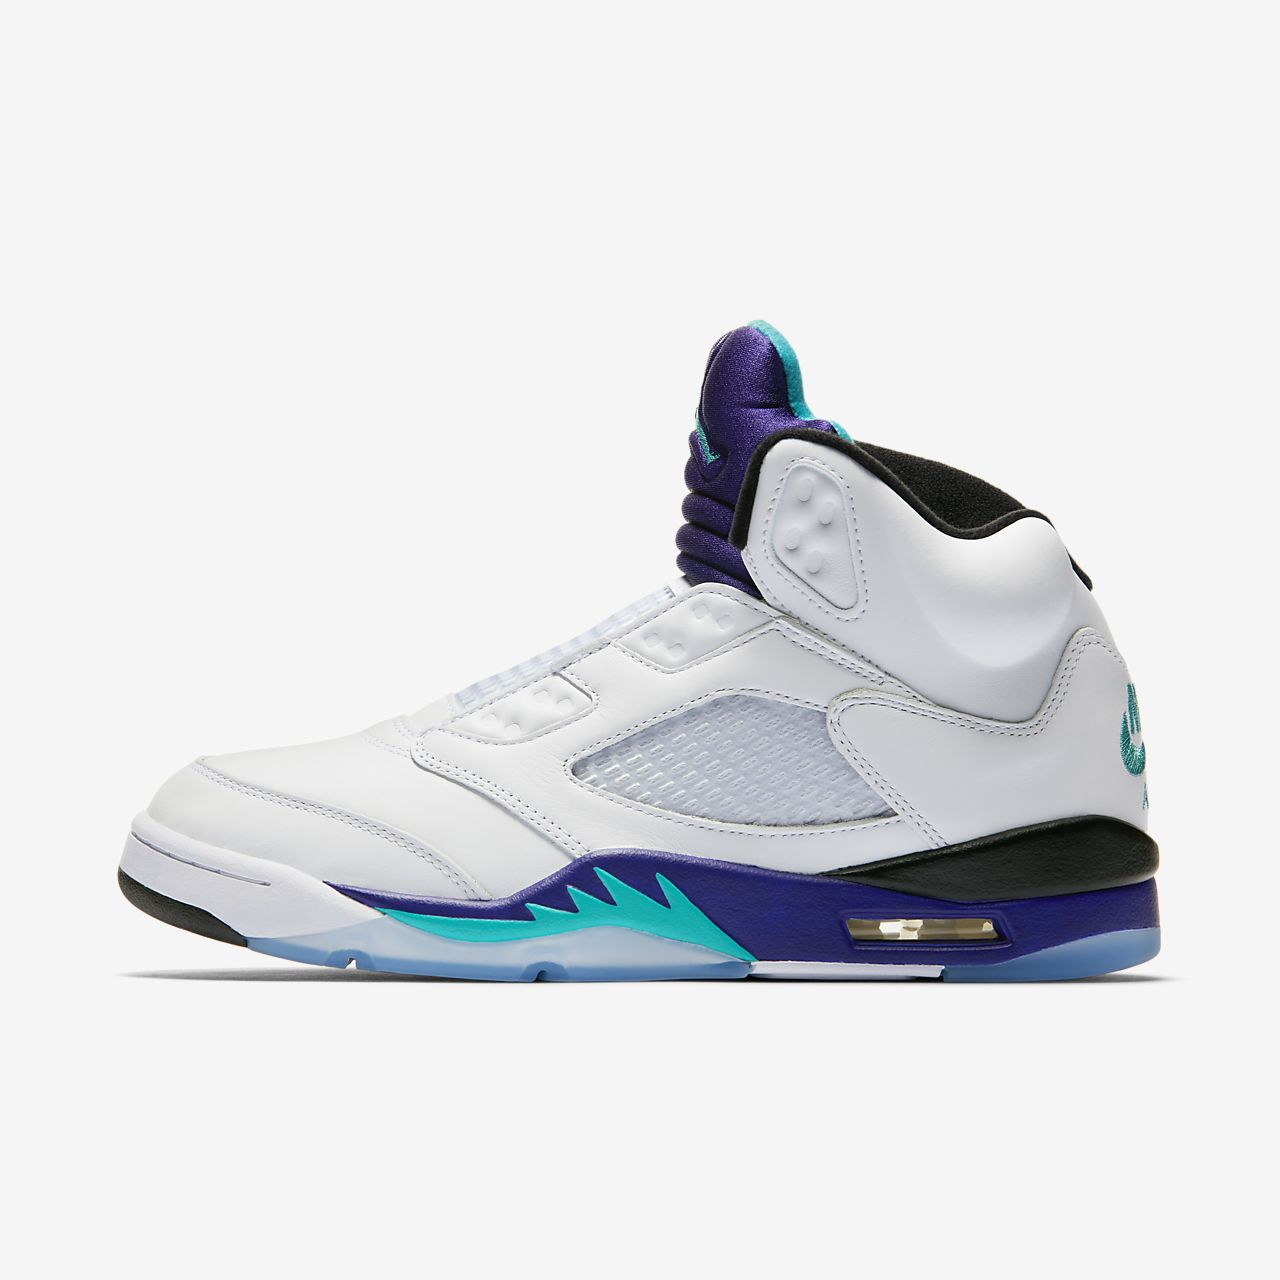 b1c7963ed9577b Air Jordan 5 Retro Men s Shoe. Nike.com ID